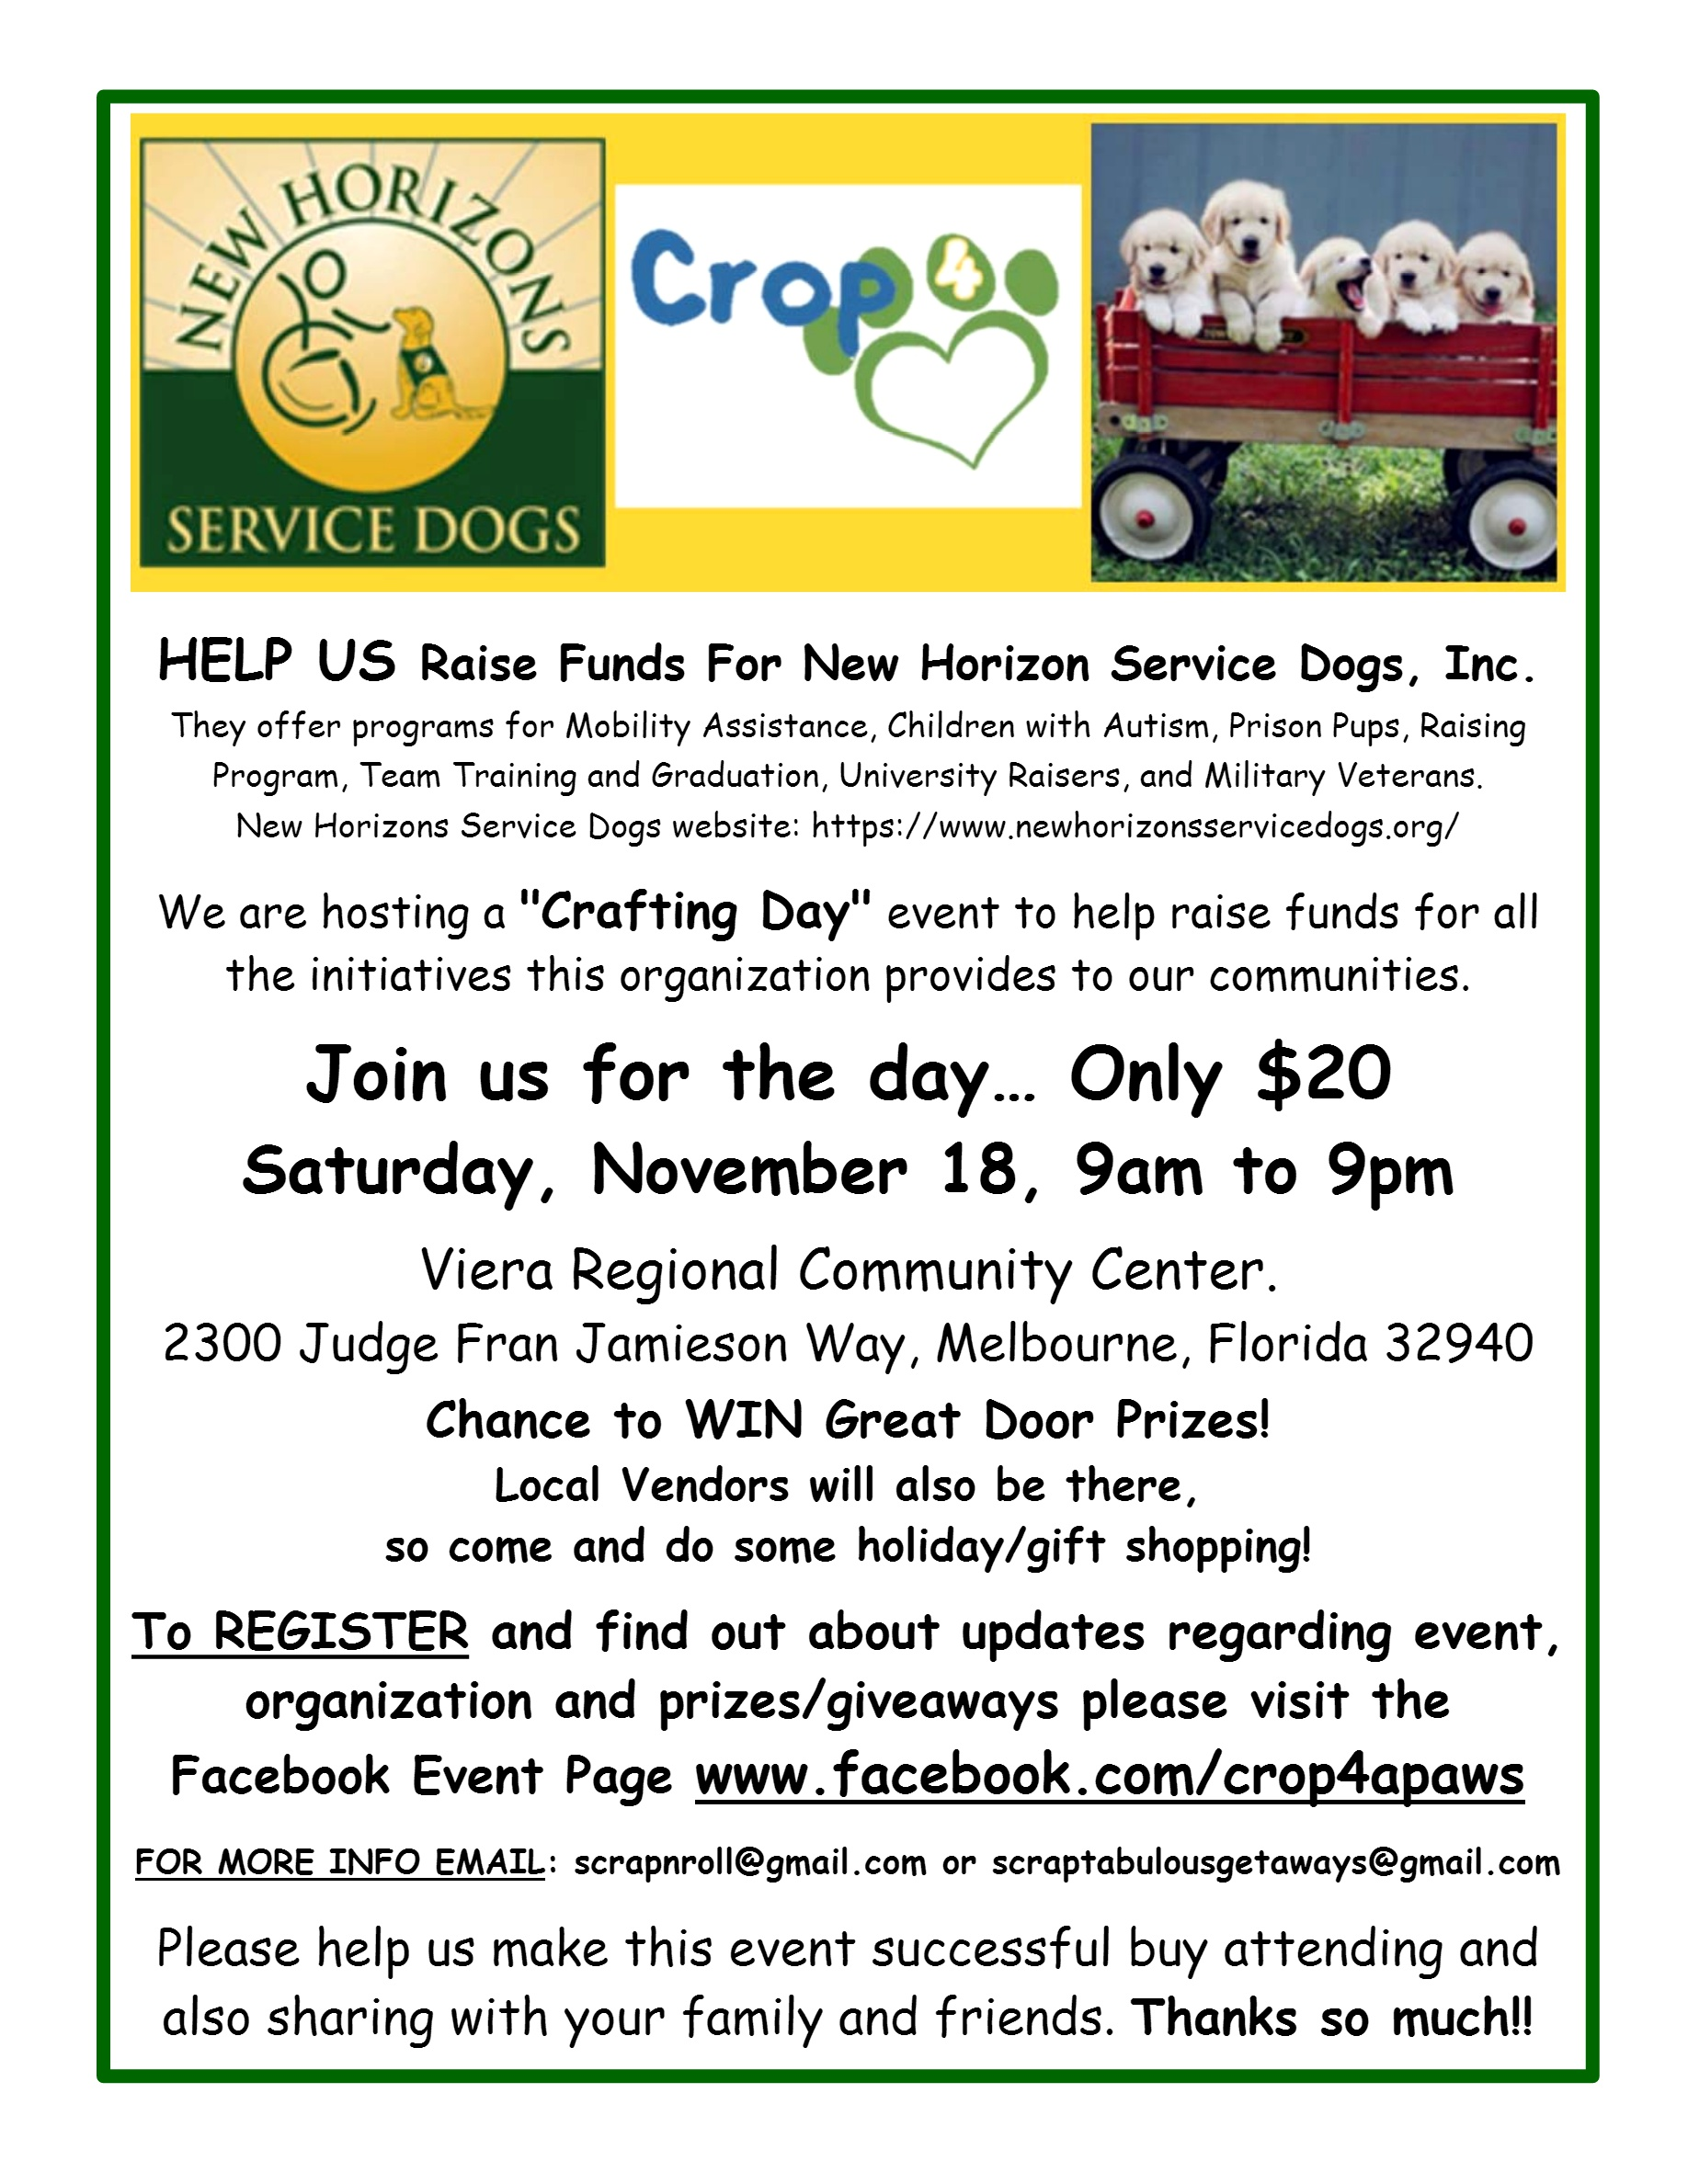 Crop 4 Paws On November 18, 2017 At Viera Regional Community Center